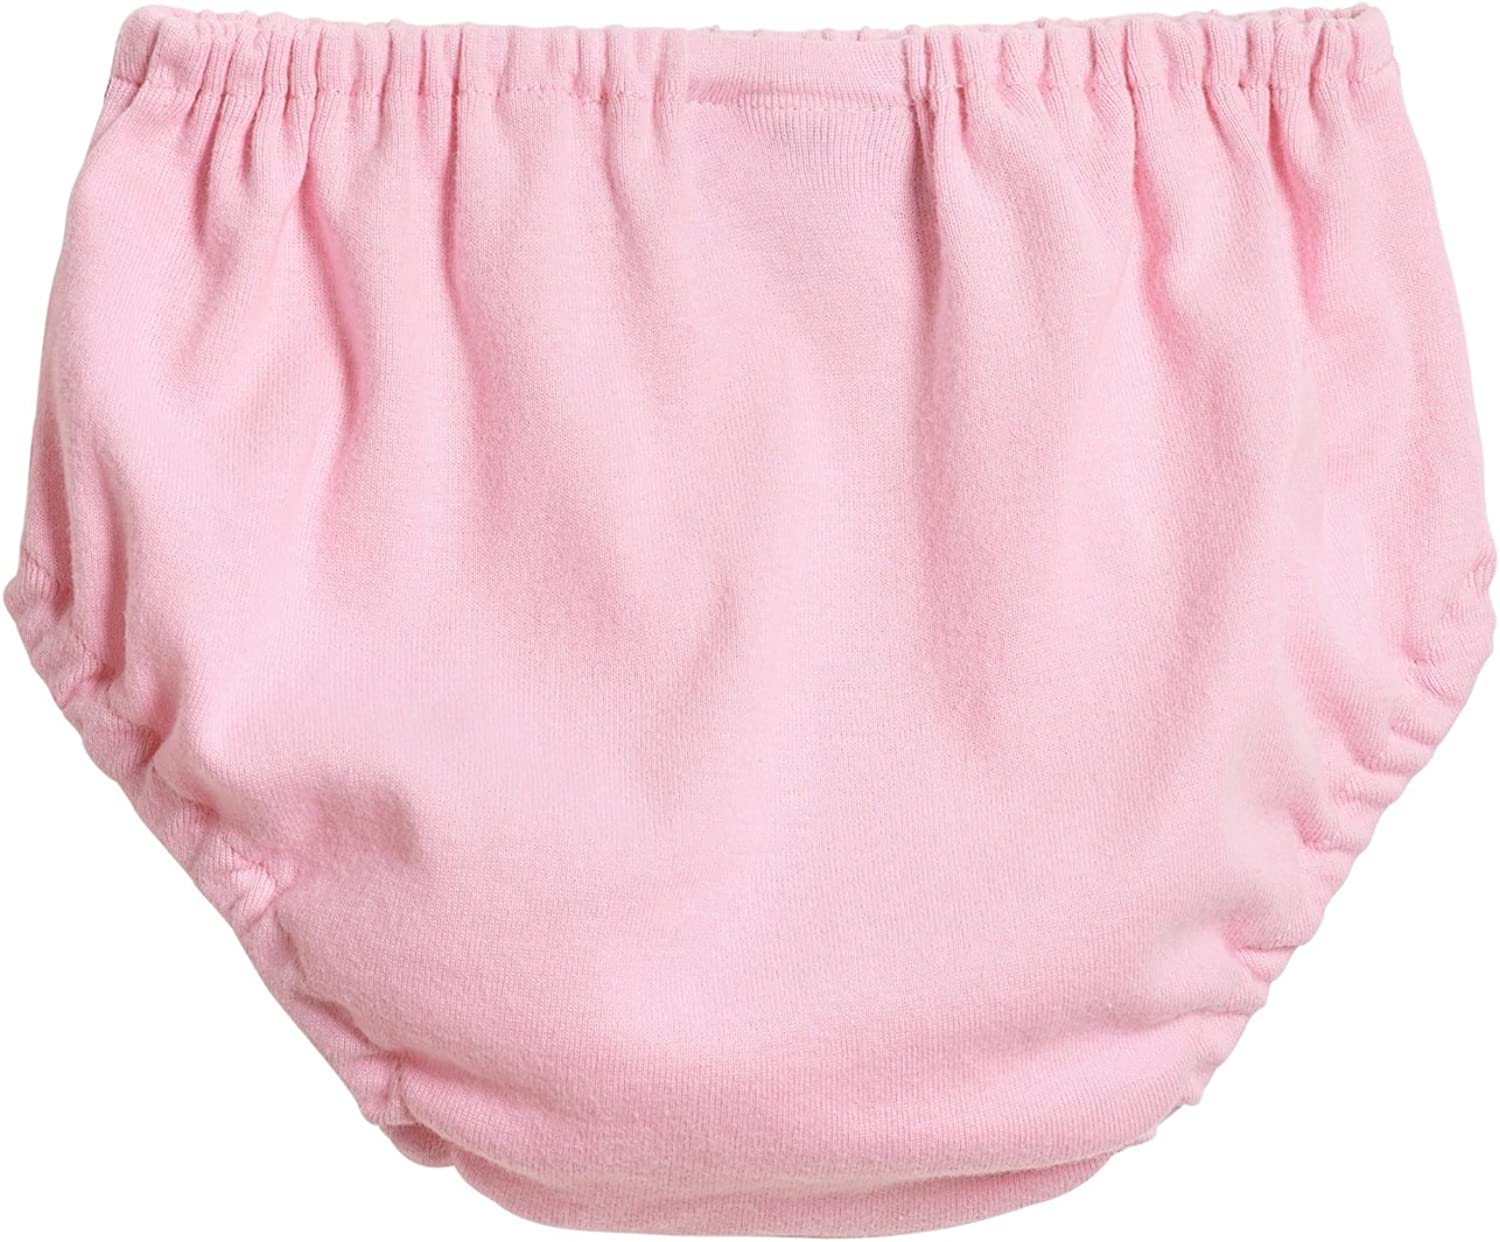 City Threads Girls /& Boys Organic Cotton Diaper Covers Made in USA